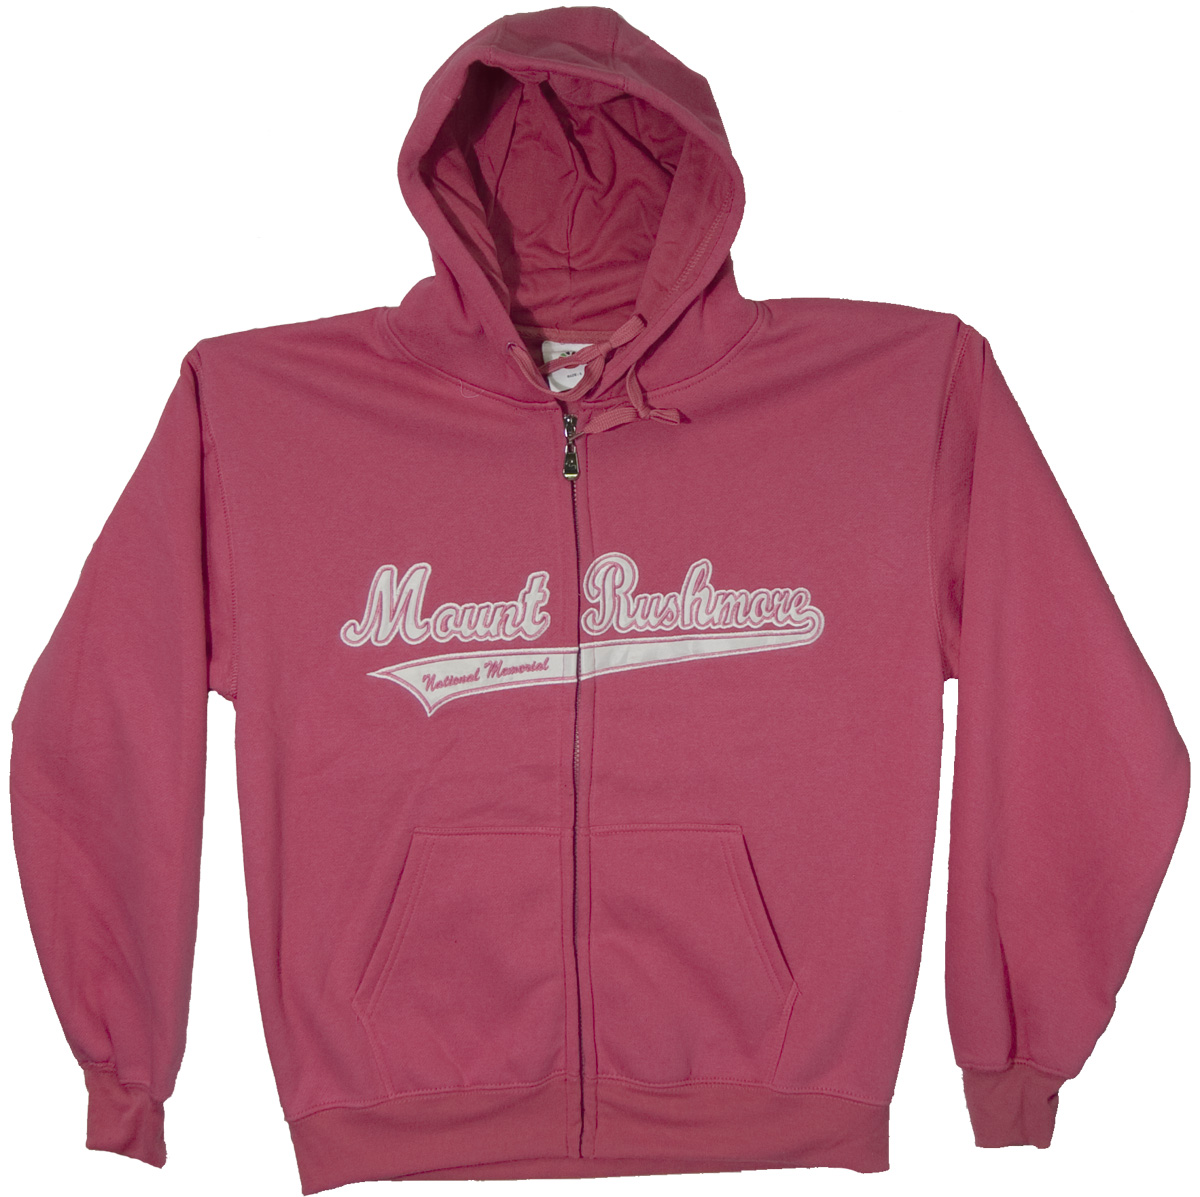 (XL) MOUNT RUSHMORE HOT PINK APPLIQUE ZIP HOODY